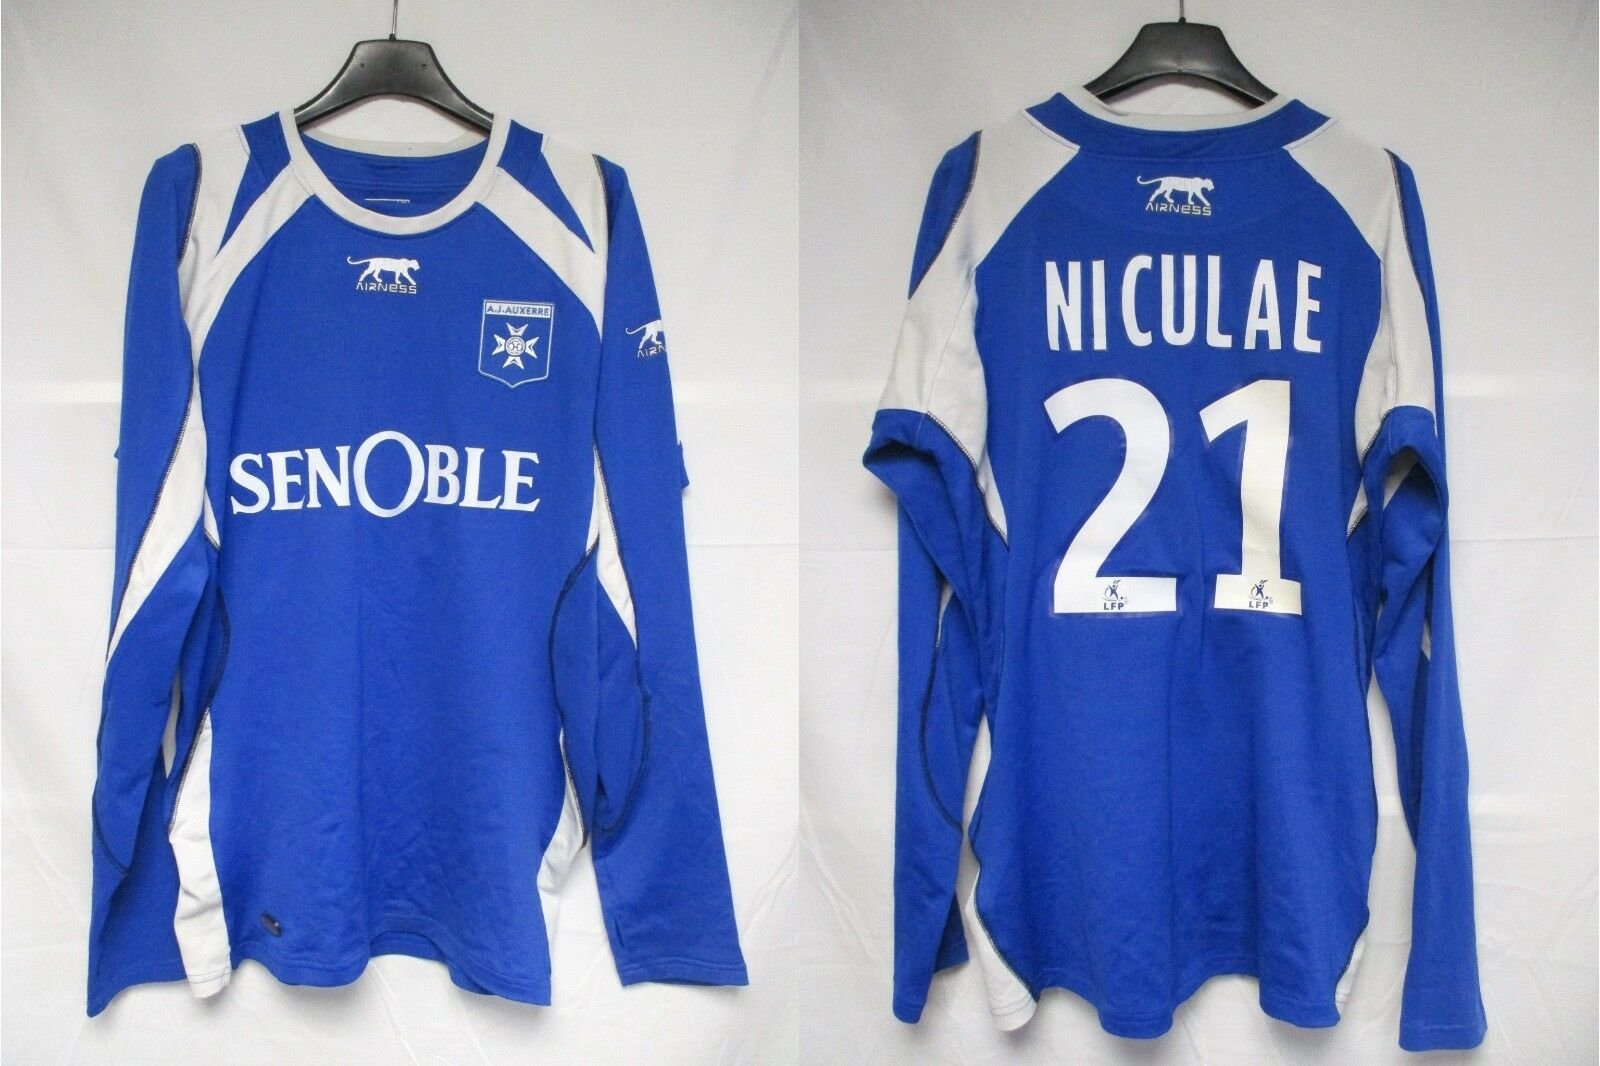 Maillot AJA AUXERRE 2009 AIRNESS Daniel NICULAE n°21 shirt Manches longues LS L